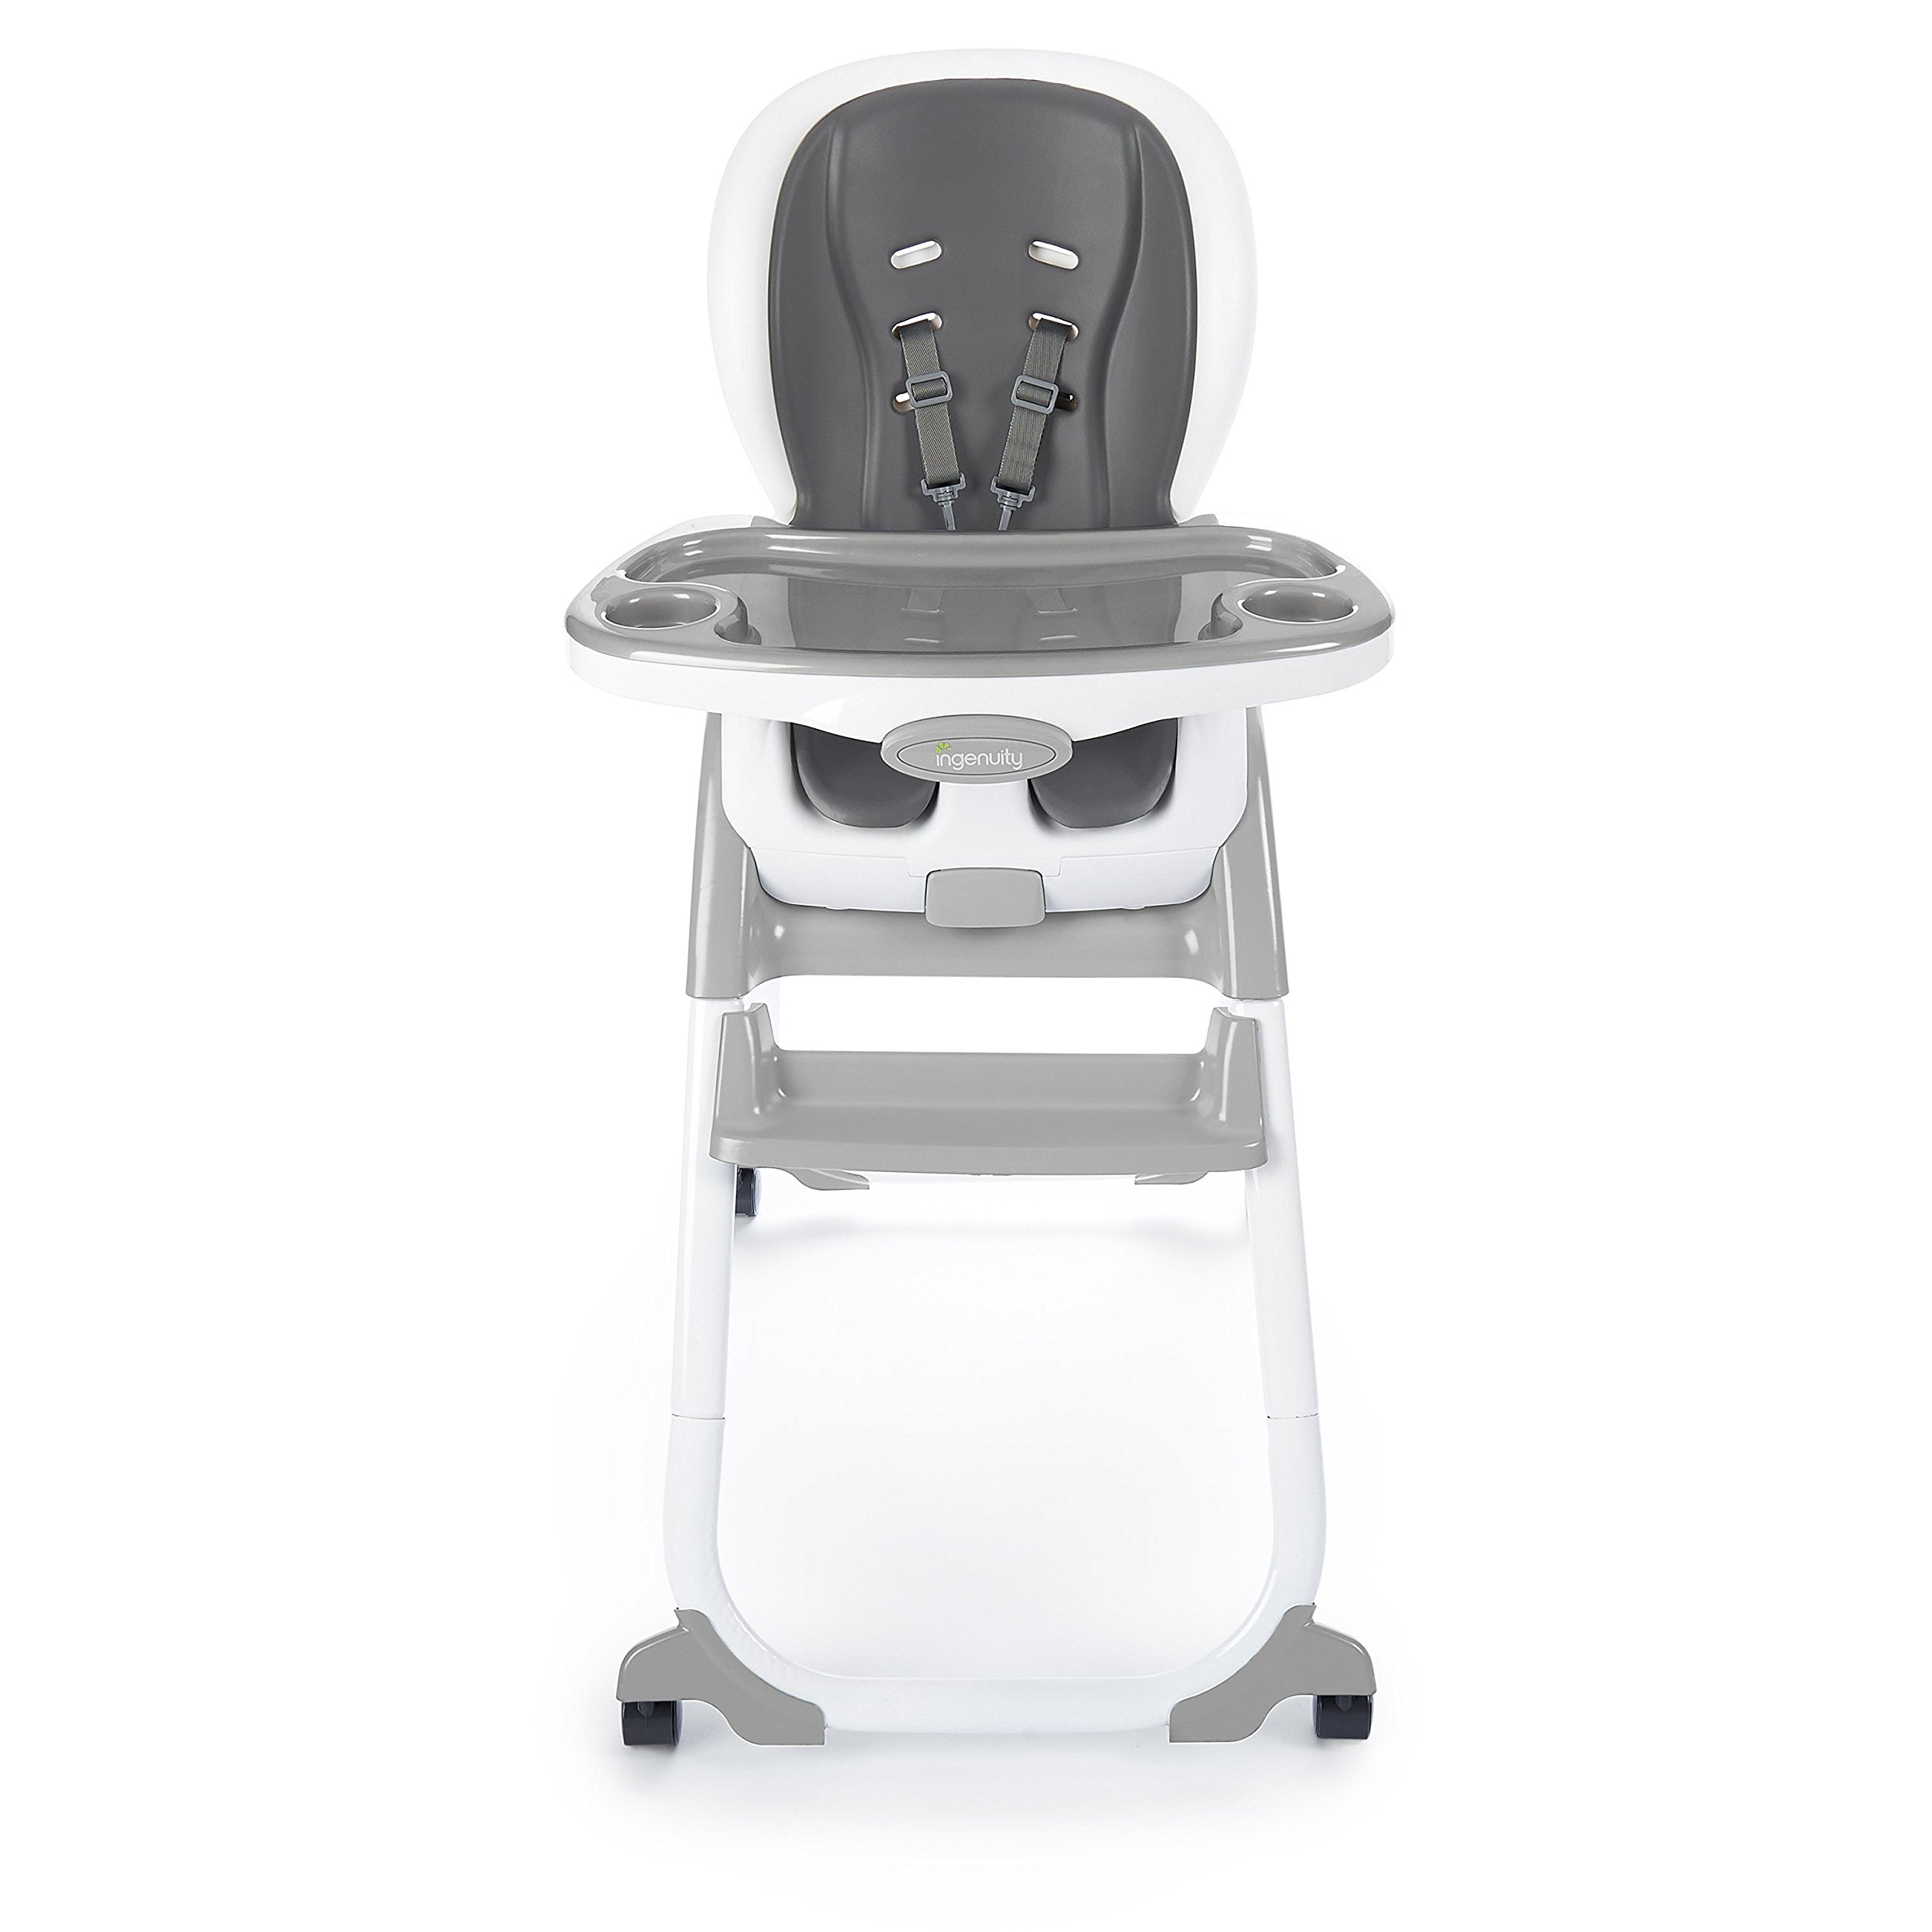 Ingenuity SmartClean Trio Elite 3-in-1 High Chair - Slate - High Chair, Toddler Chair, Booster by Ingenuity